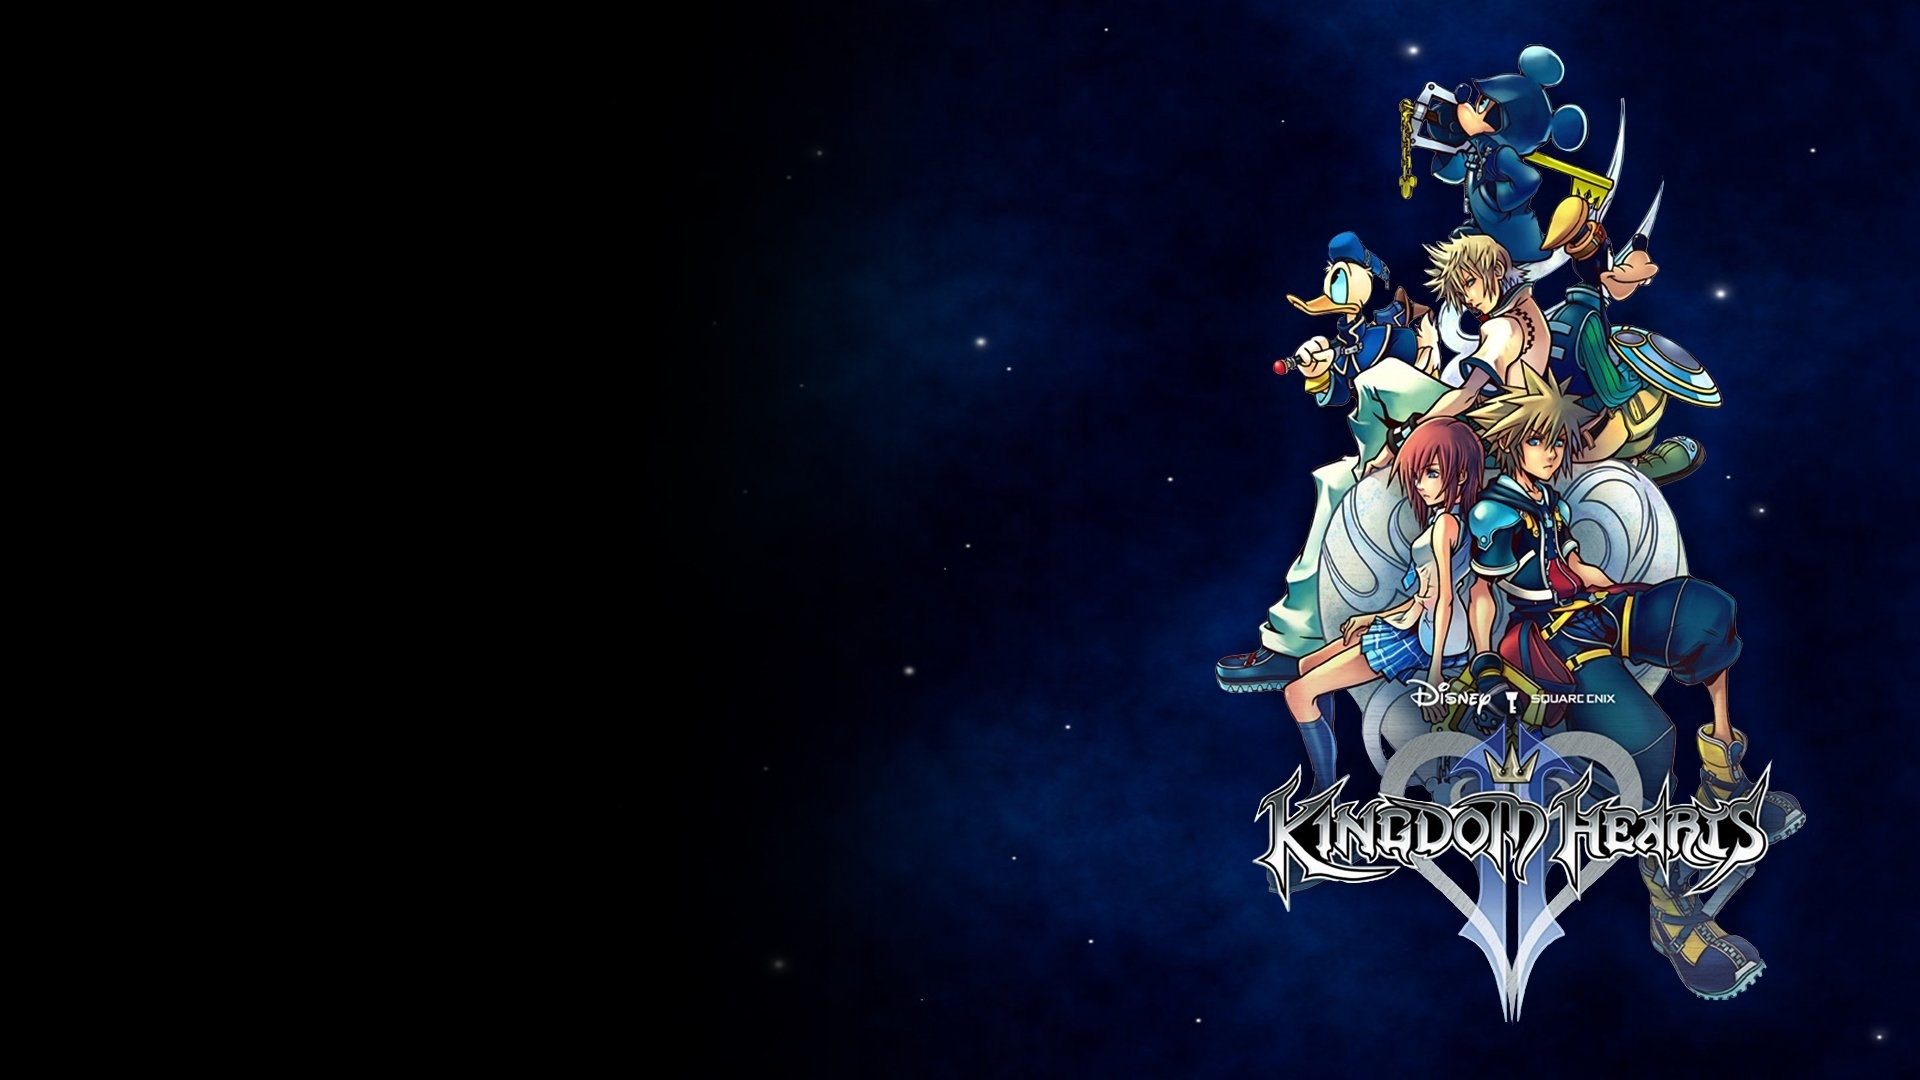 6 kingdom hearts ii hd wallpapers | background images - wallpaper abyss